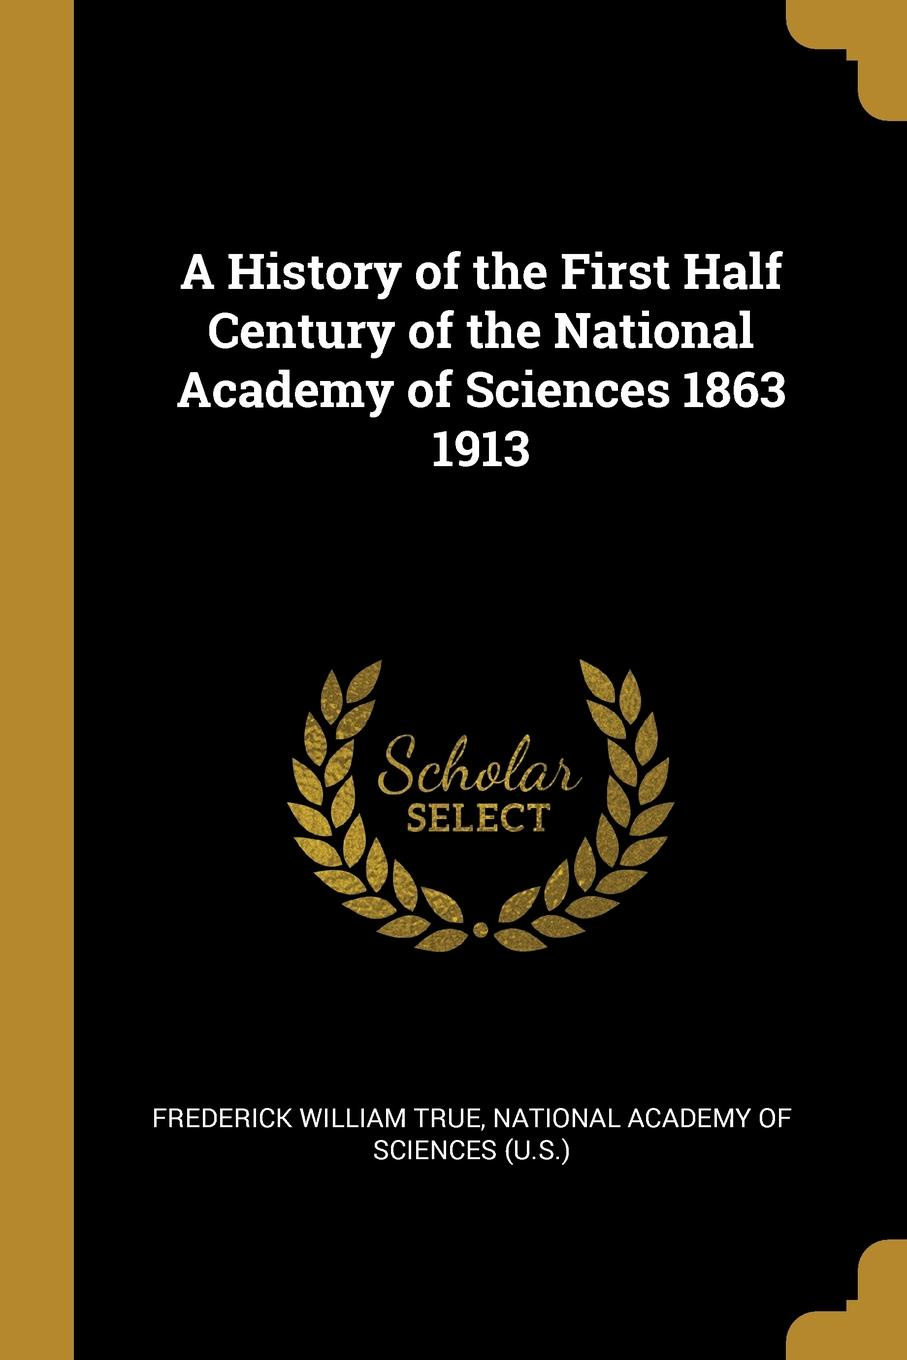 Frederick William True A History of the First Half Century of the National Academy of Sciences 1863 1913